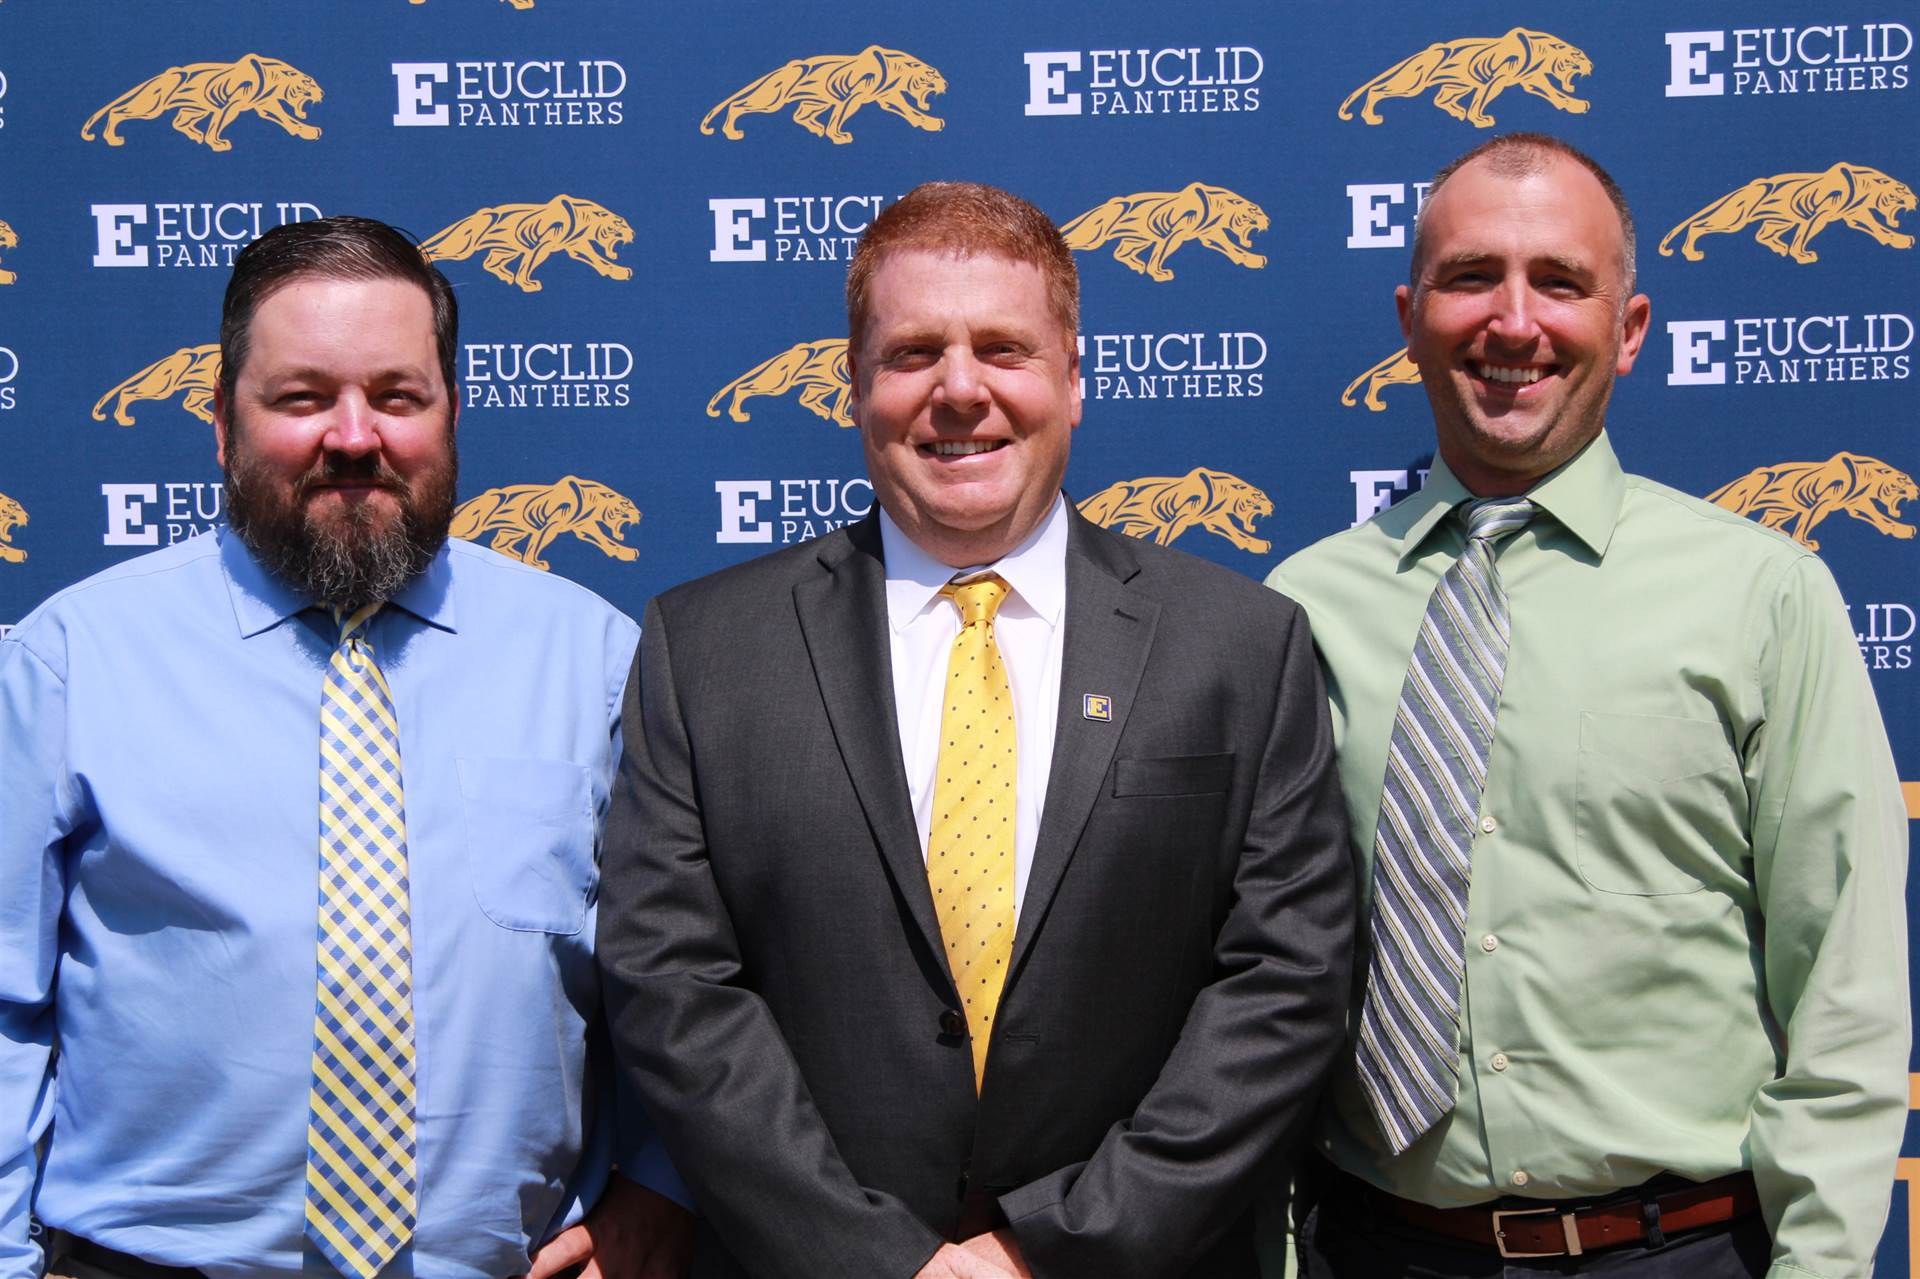 Euclid Middle School Principals, Mr. Coleman, Mr. Mennel, and Mr. Castrilla